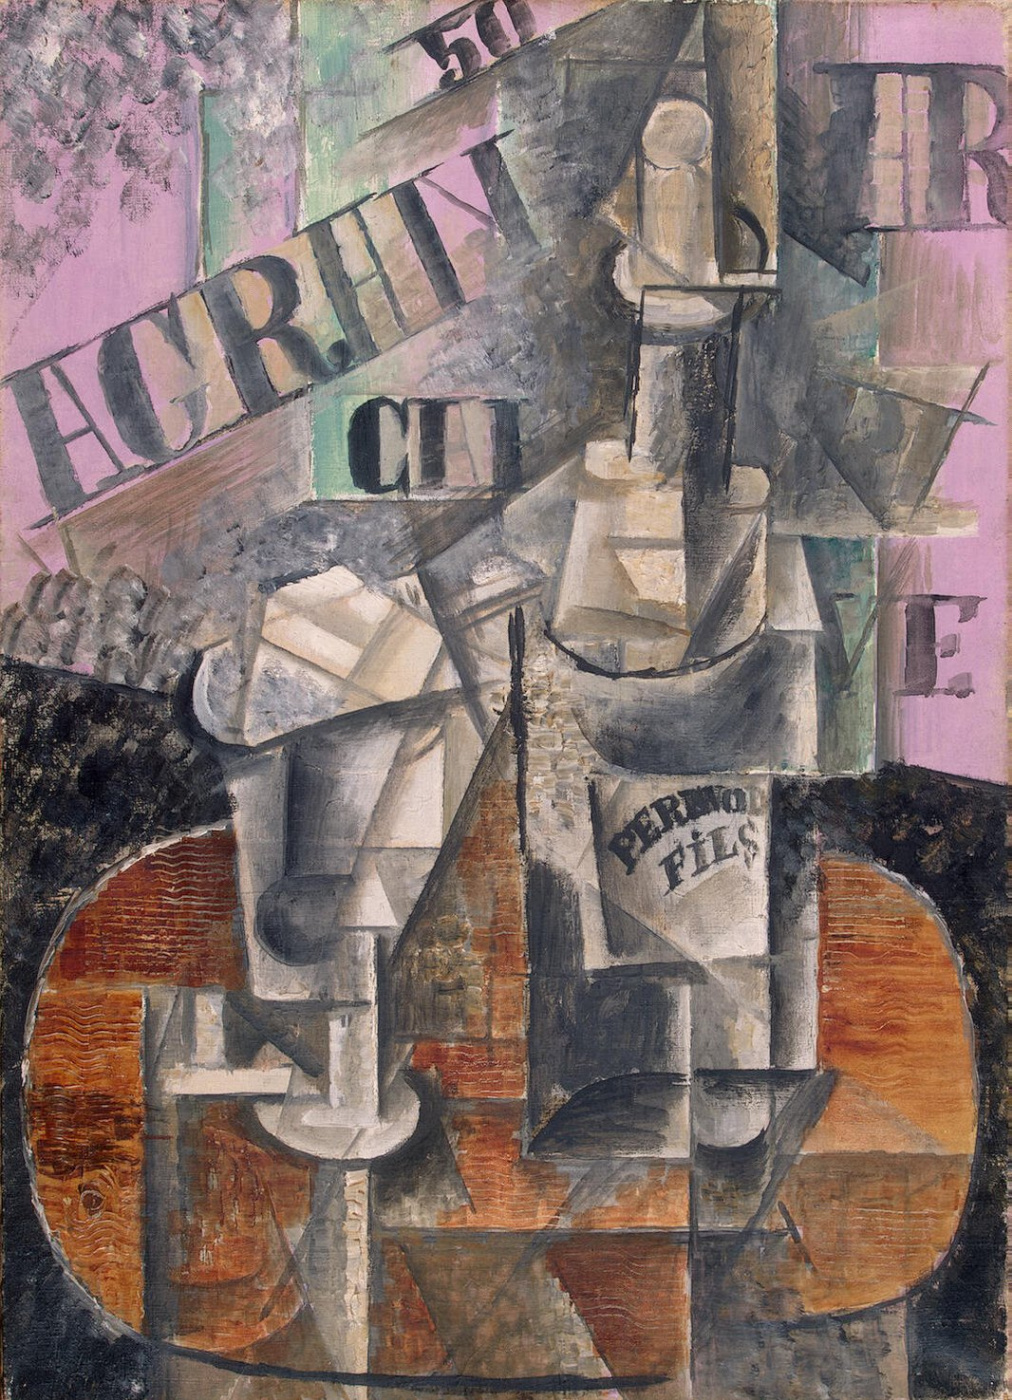 Pablo Picasso. A table in a cafe (Bottle of Pernod)